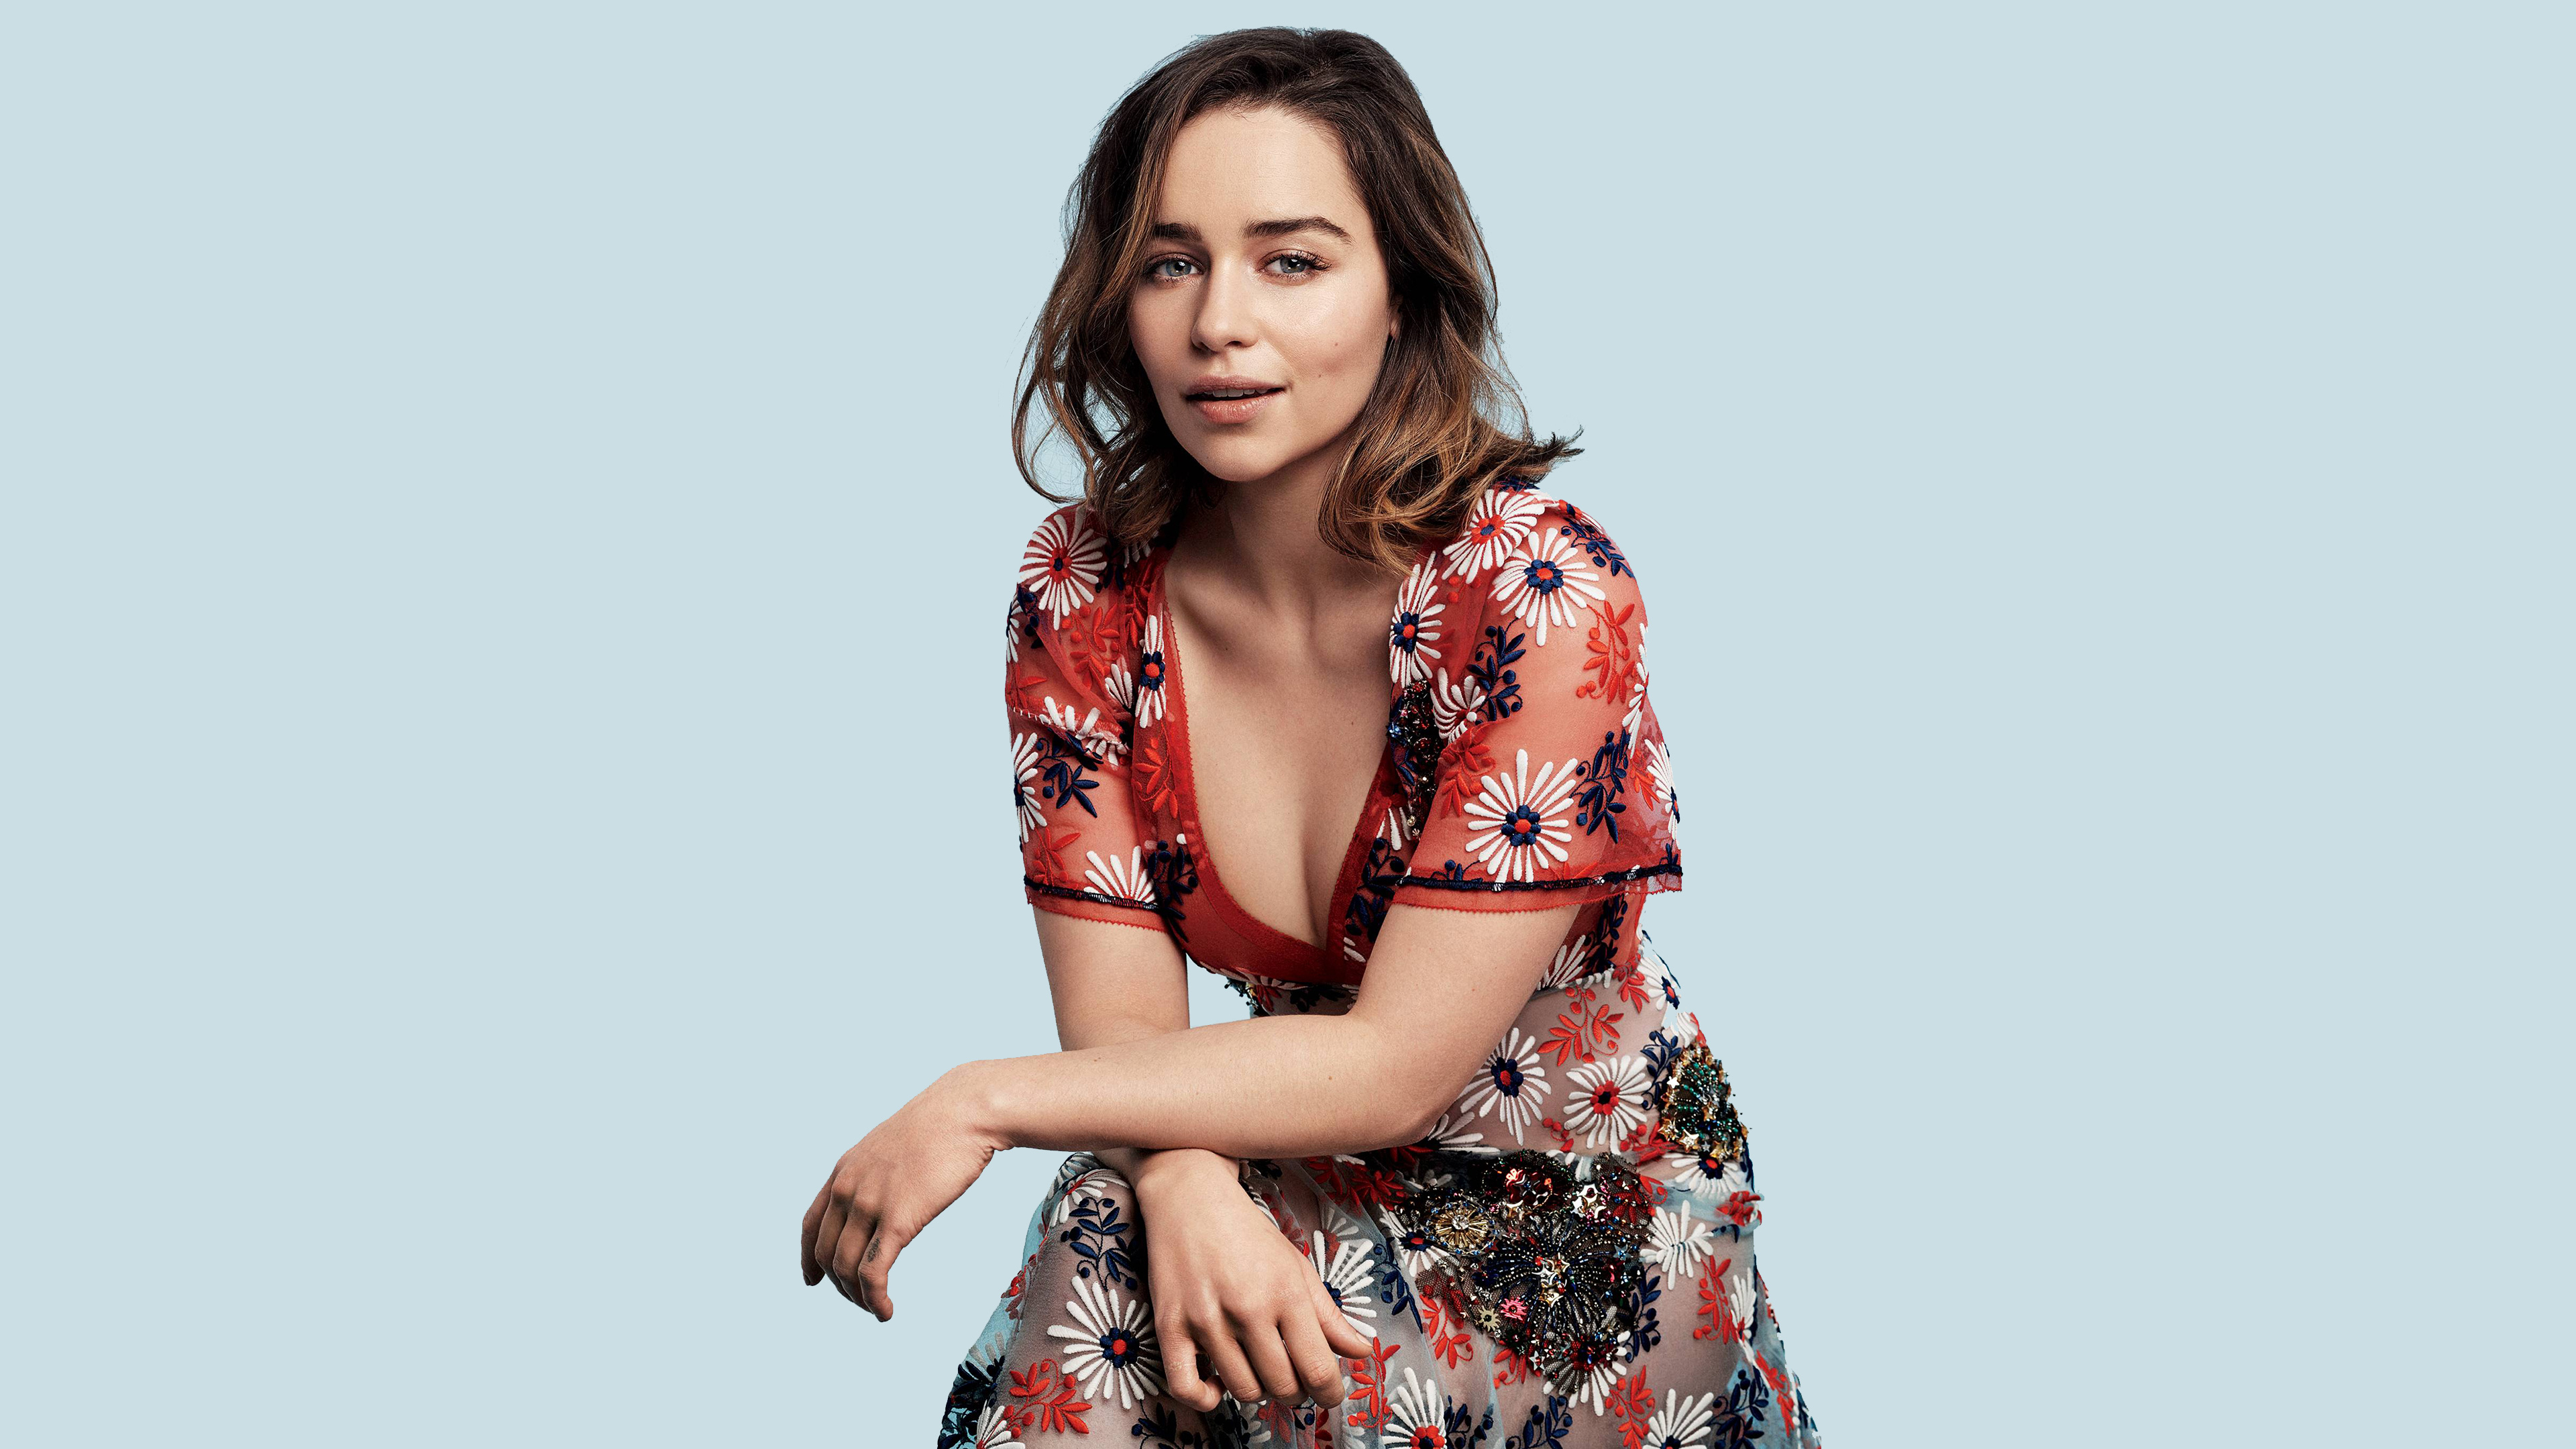 wallpaper emilia clarke, hd, 4k, celebrities, #4451